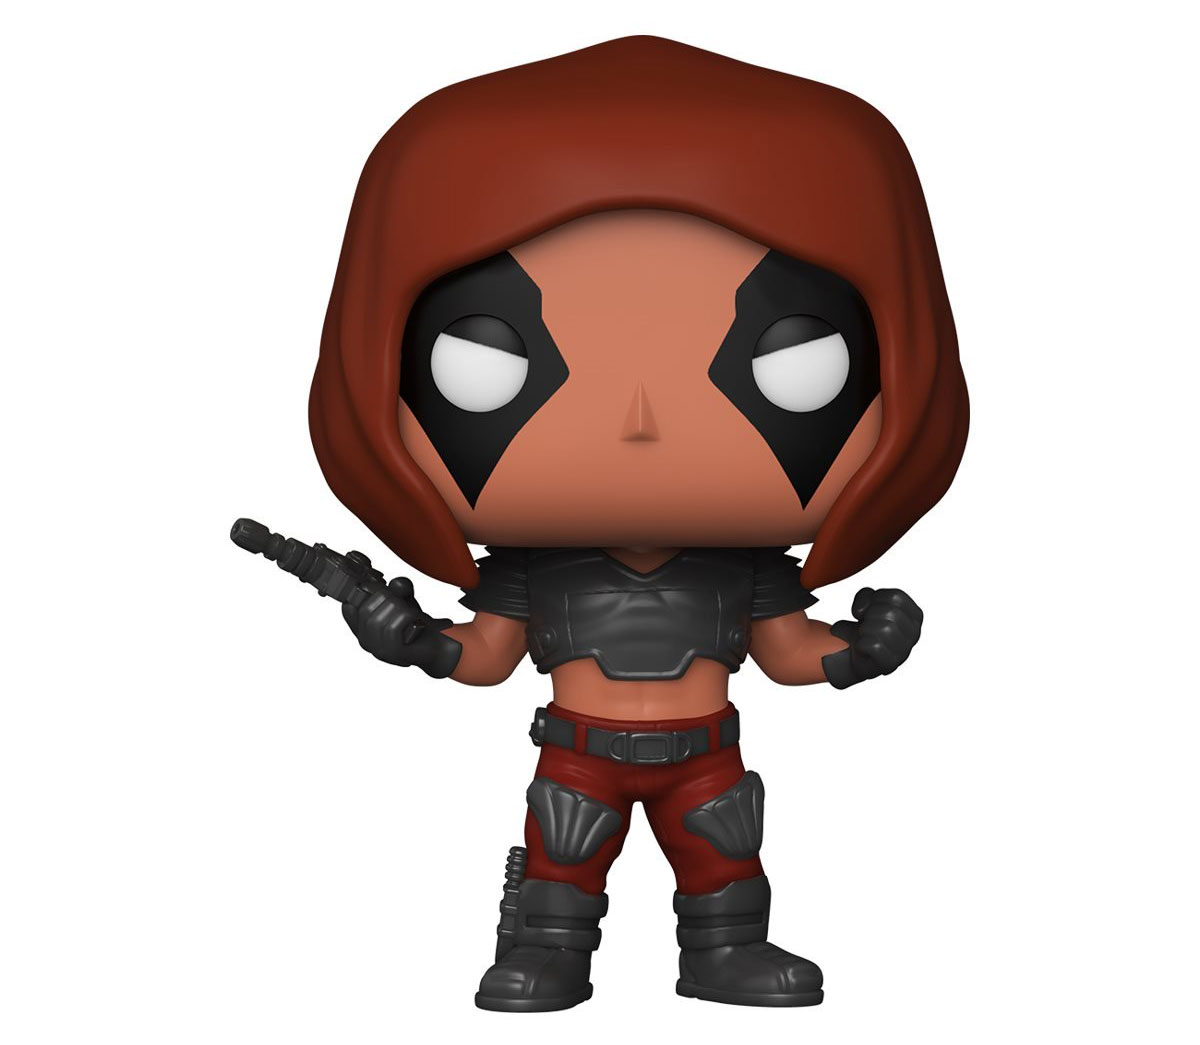 gi-joe-zartan-funko-pop-figure